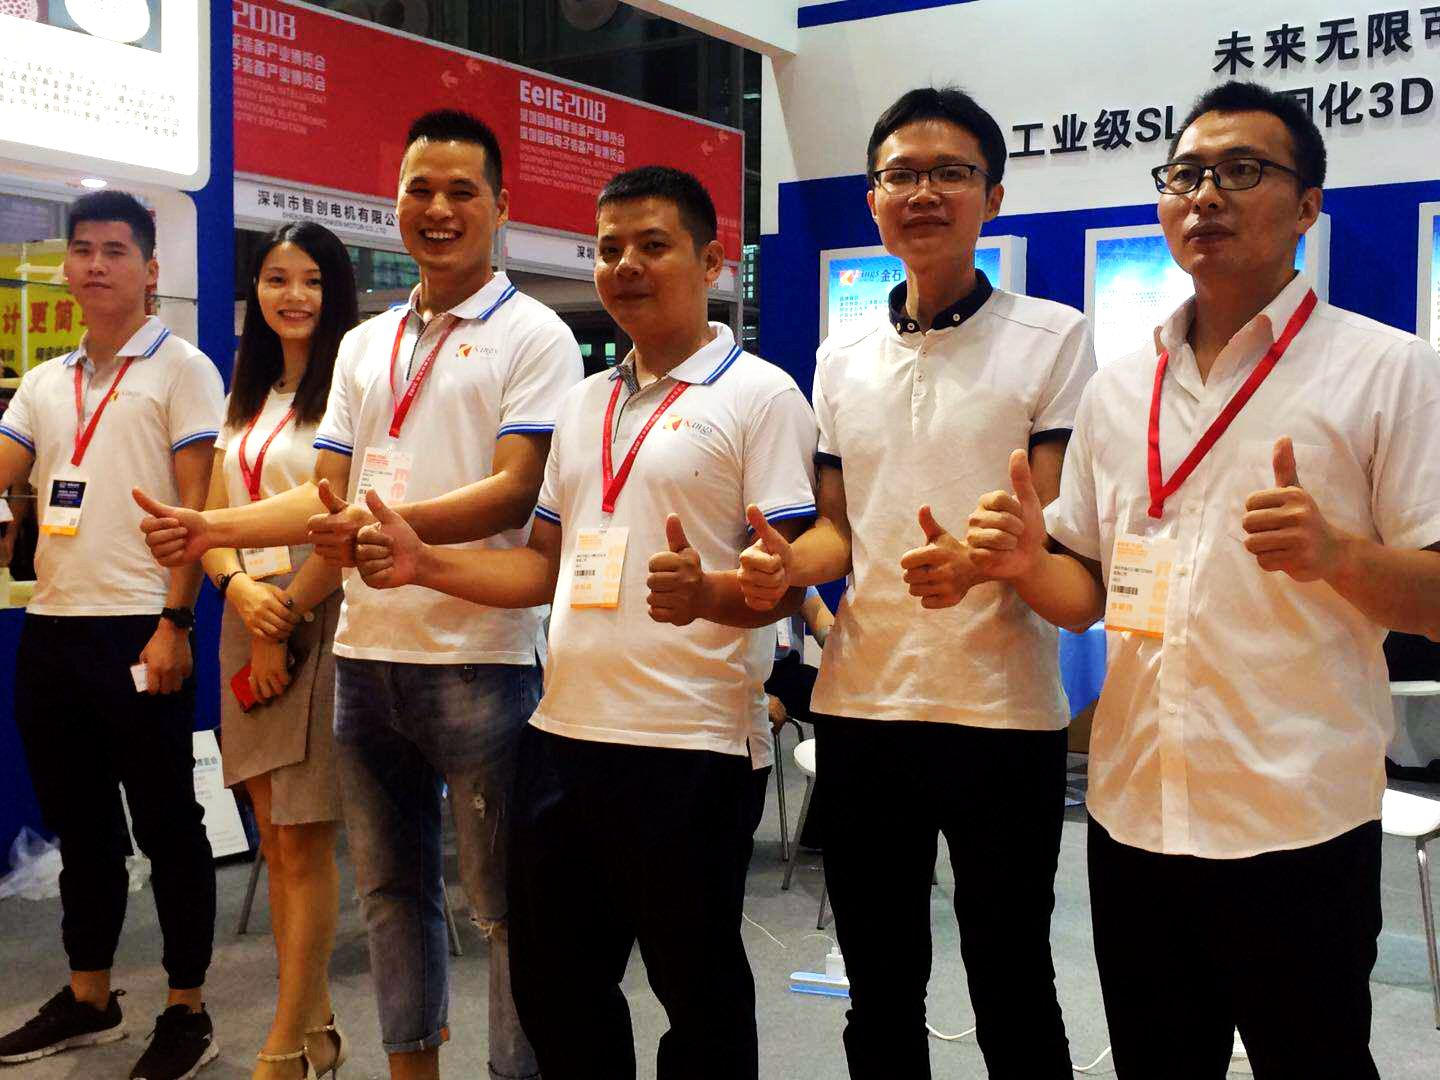 Countdown 1 days, Kings meets you at 2019 Guangzhou International 3D Printing Exhibition